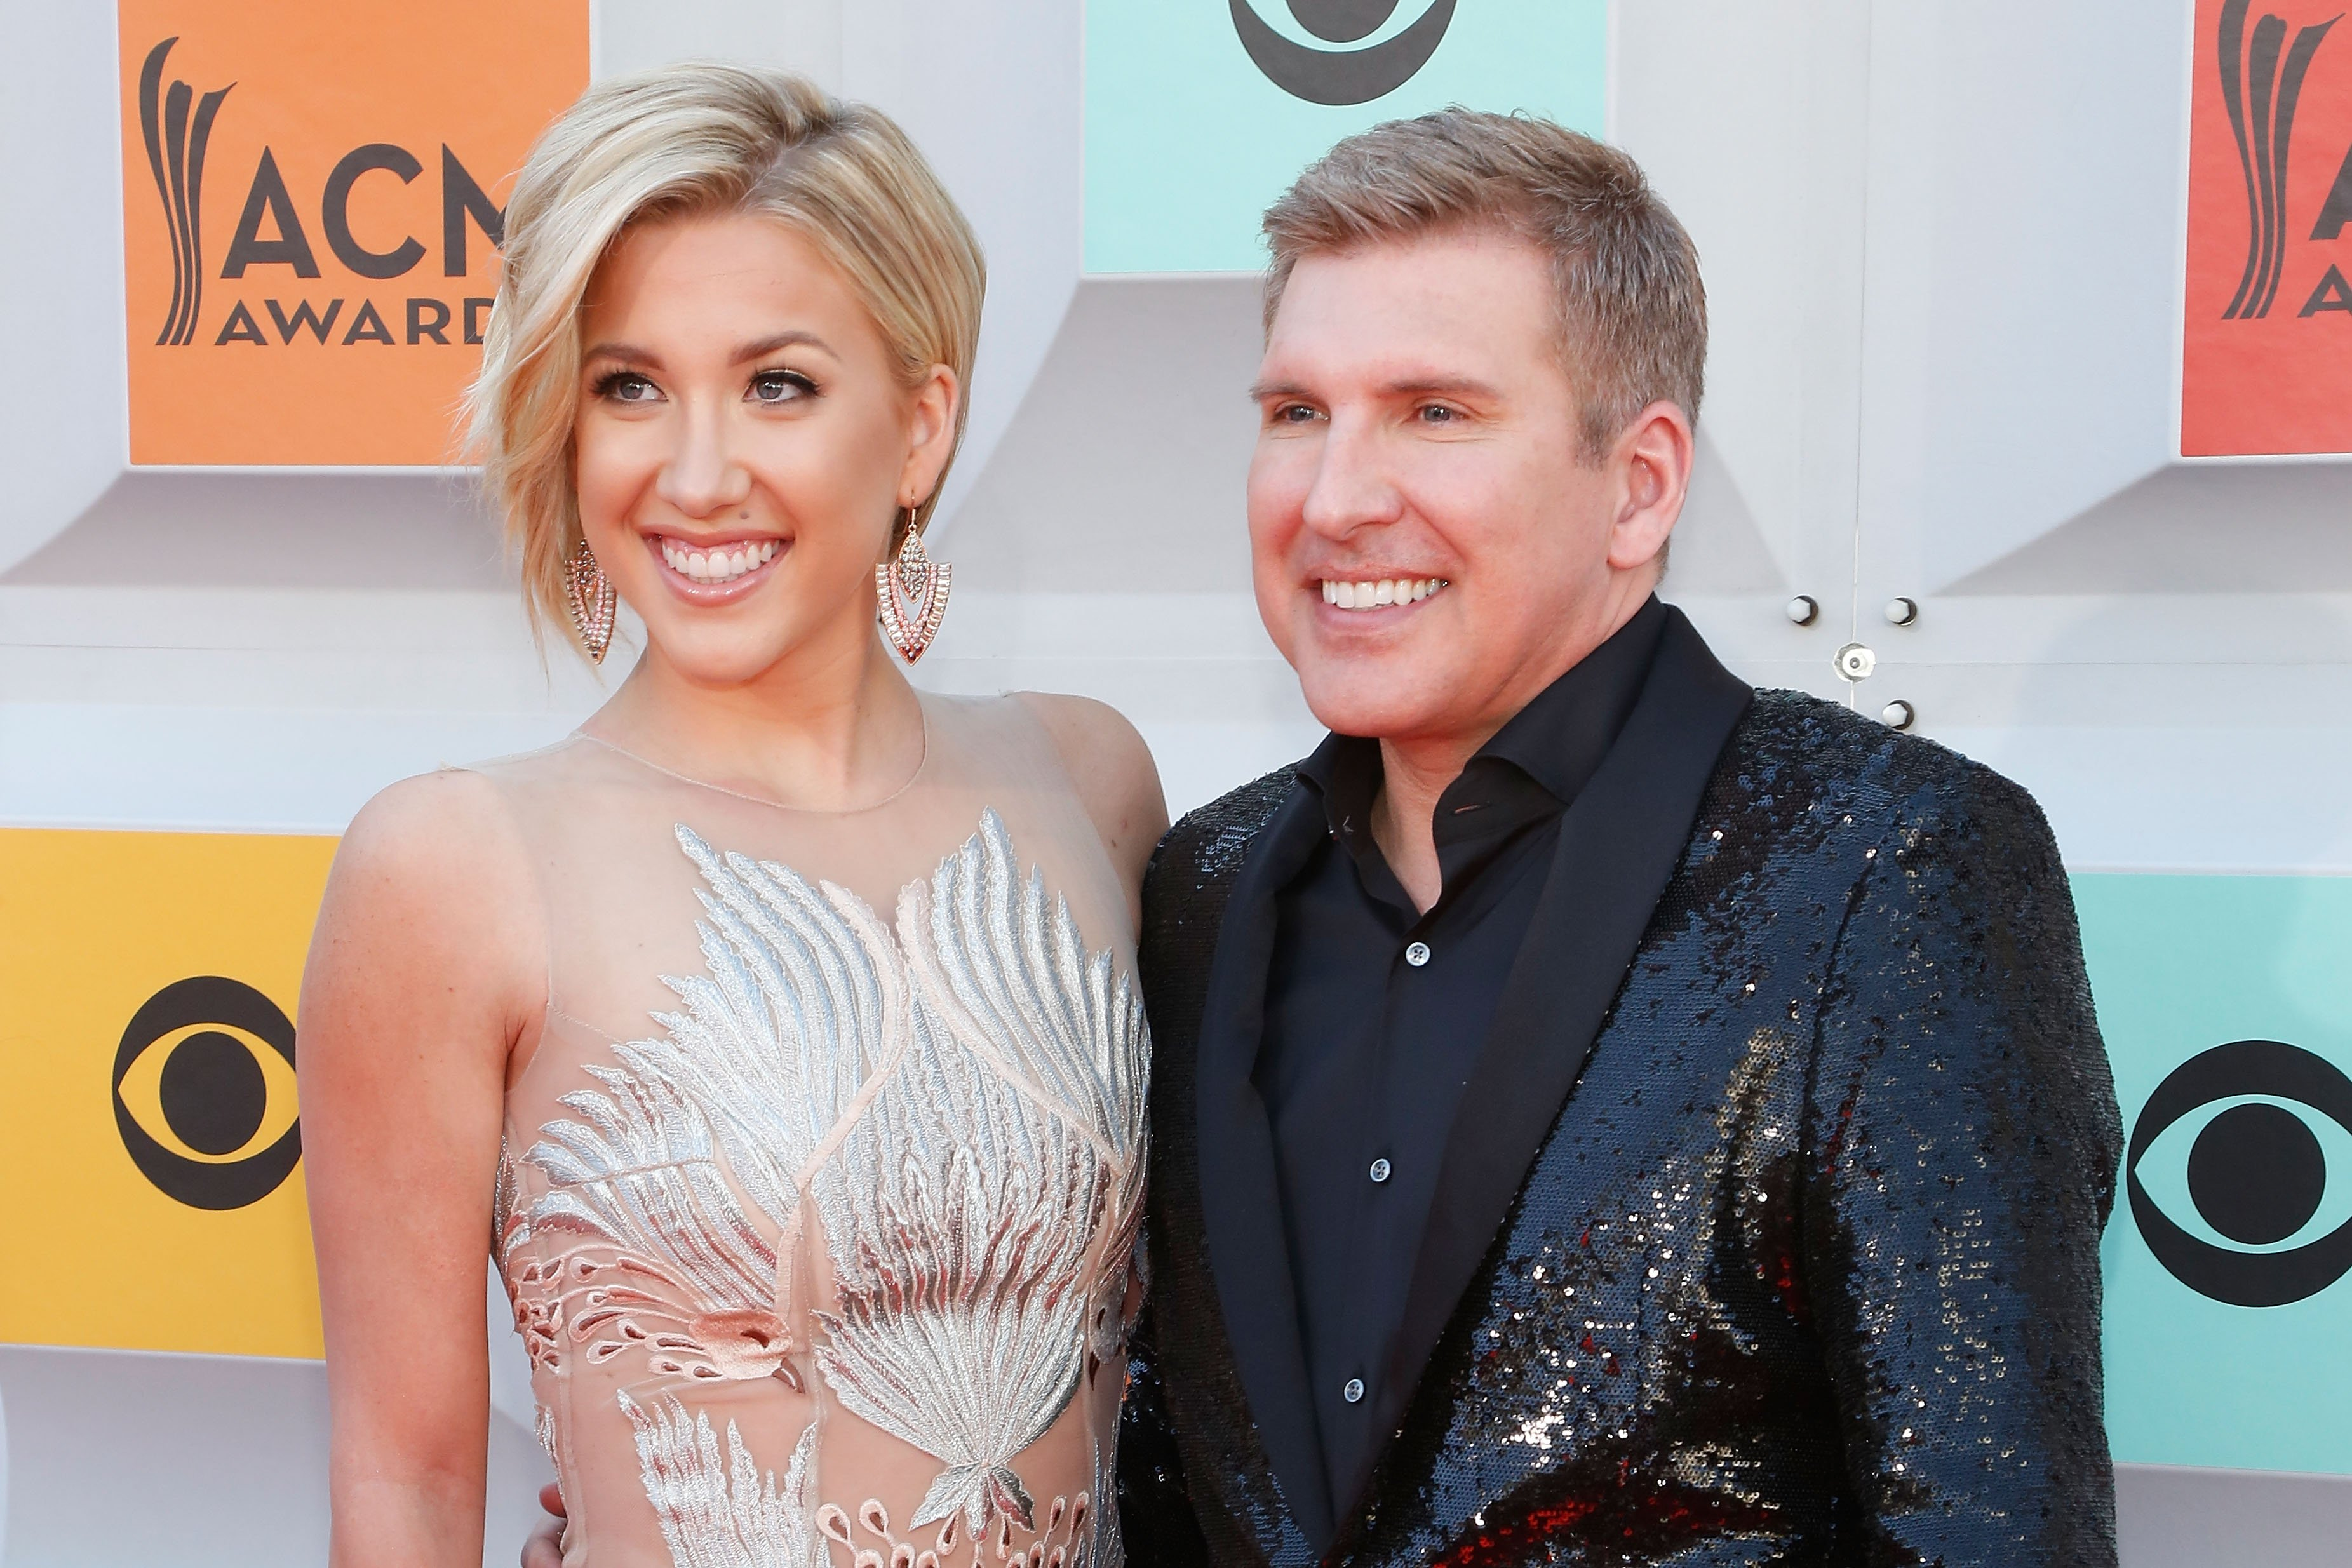 Savannah Chrisley and Todd Chrisley attend the Academy of Country Music Awards in Las Vegas, Nevada on April 3, 2016 | Photo: Getty Images